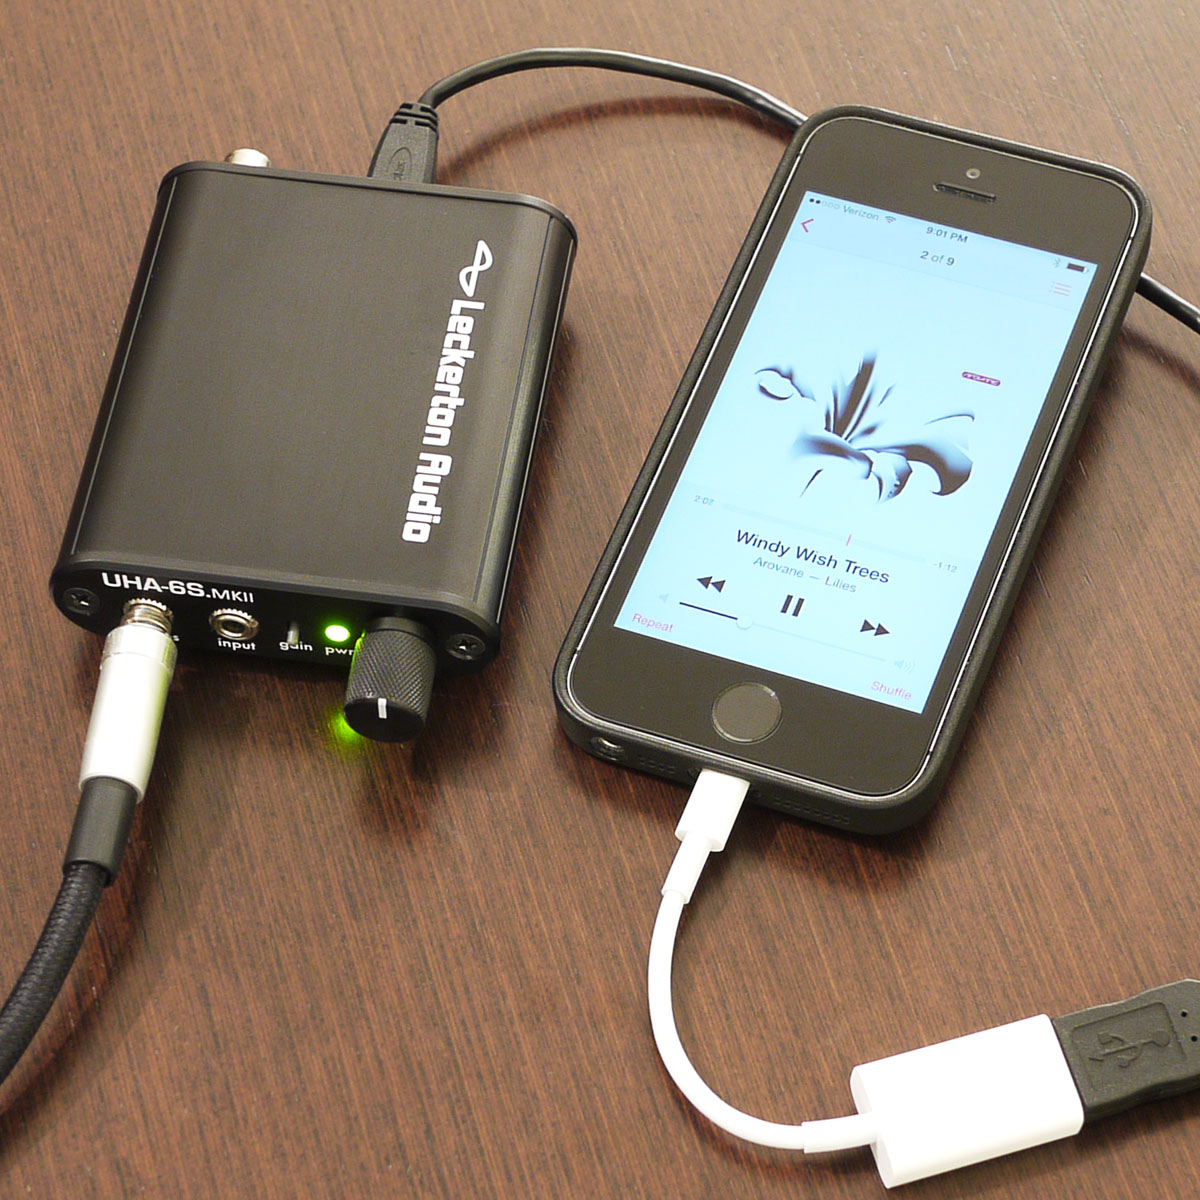 iPhone as digital audio source for the UHA-6S.MKII